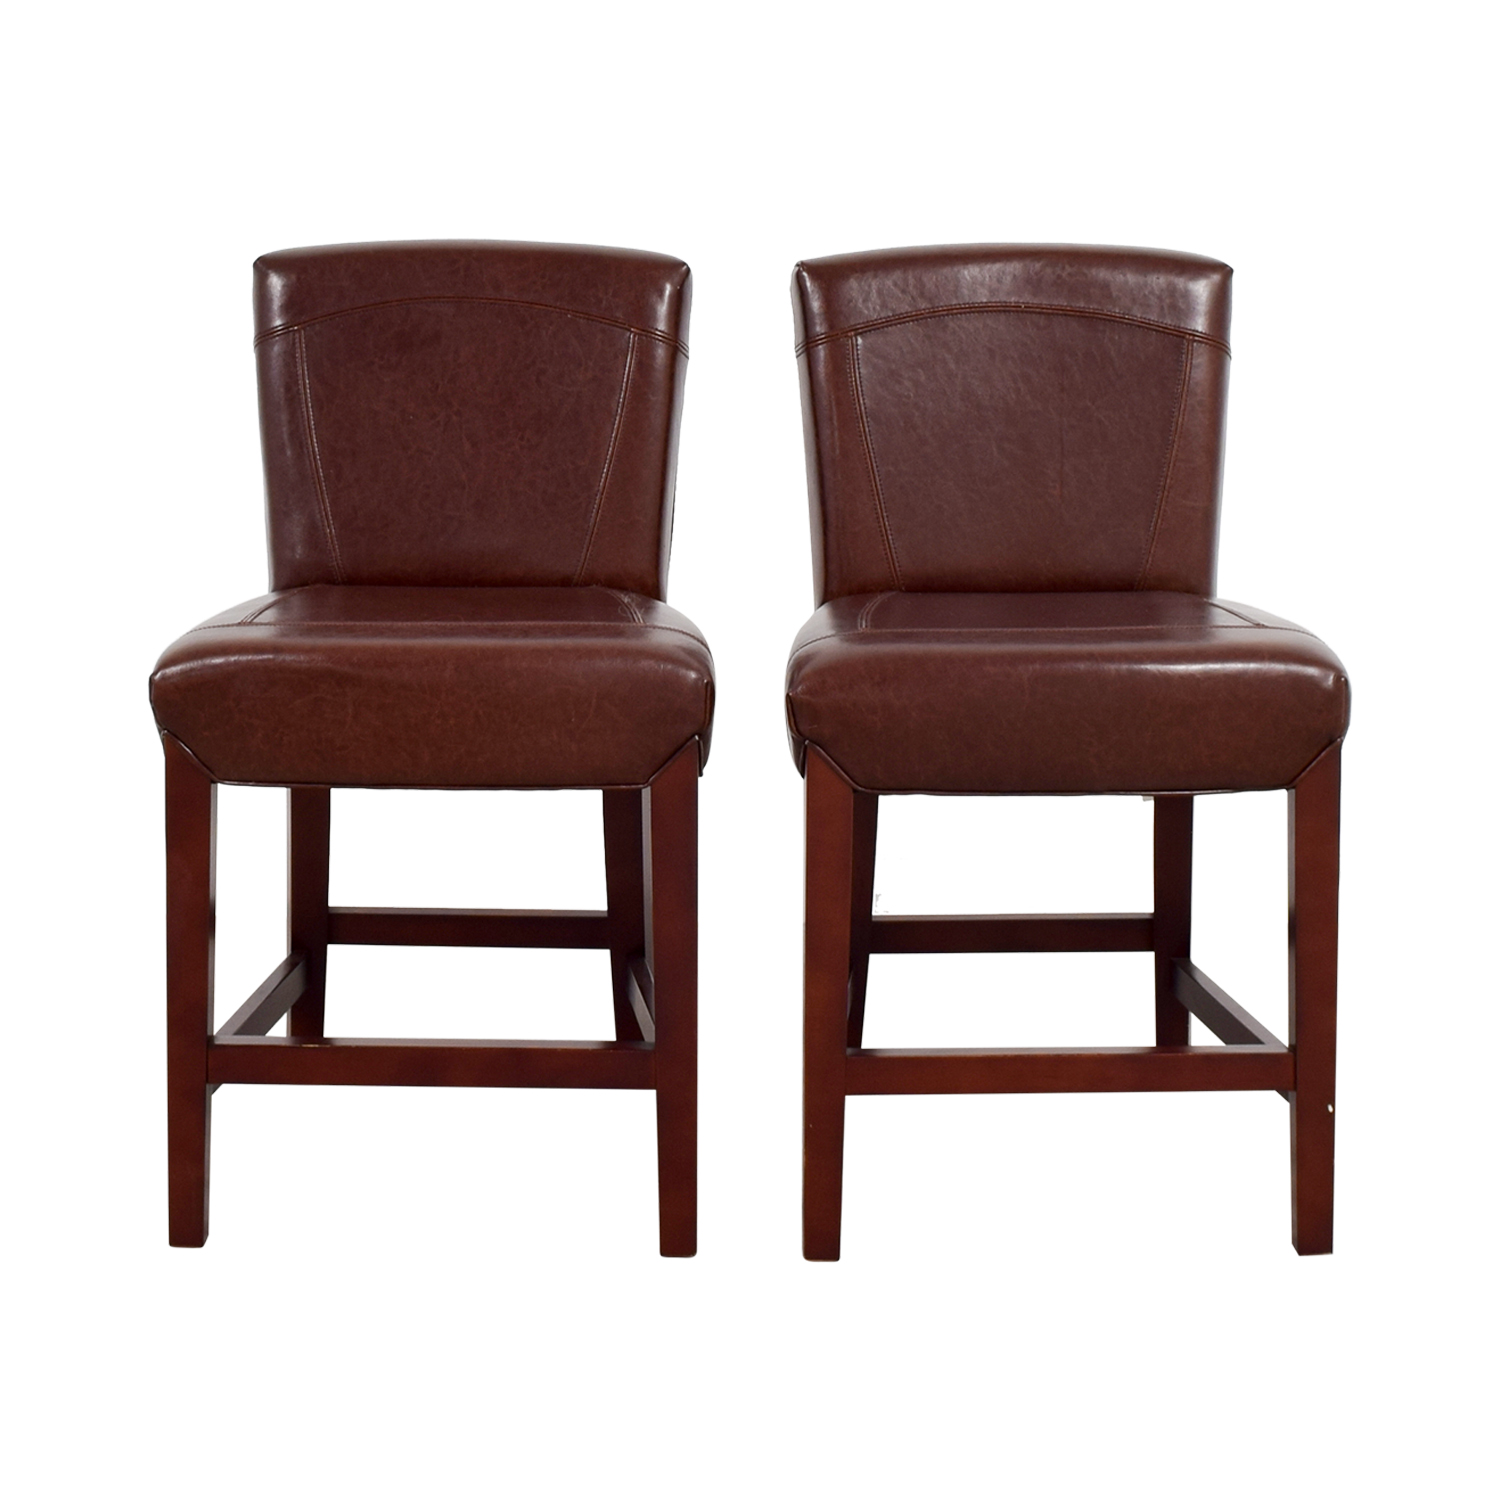 Crate & Barrel Crate & Barrel Brown Leather Bar Stools Stools